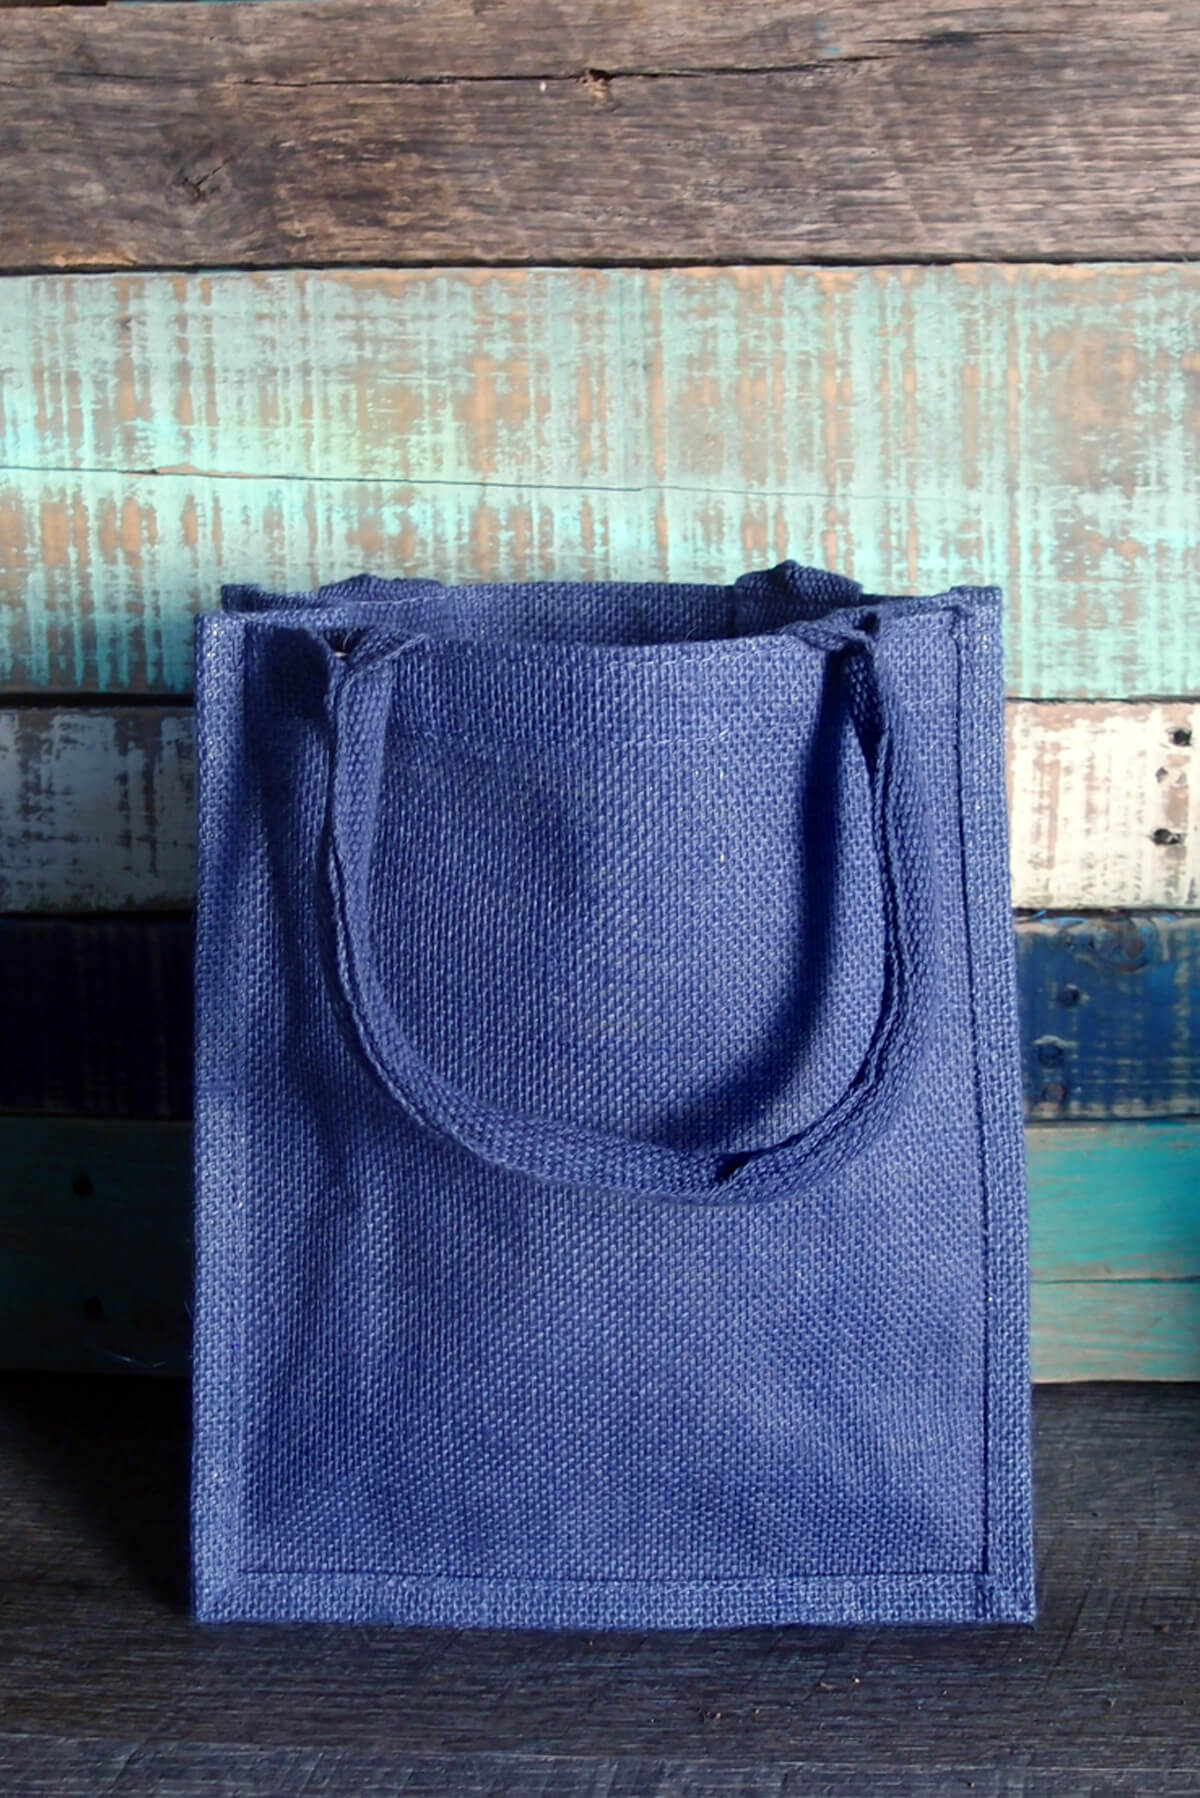 Blue Burlap 11x9 Euro Tote Bag Welcome Bags